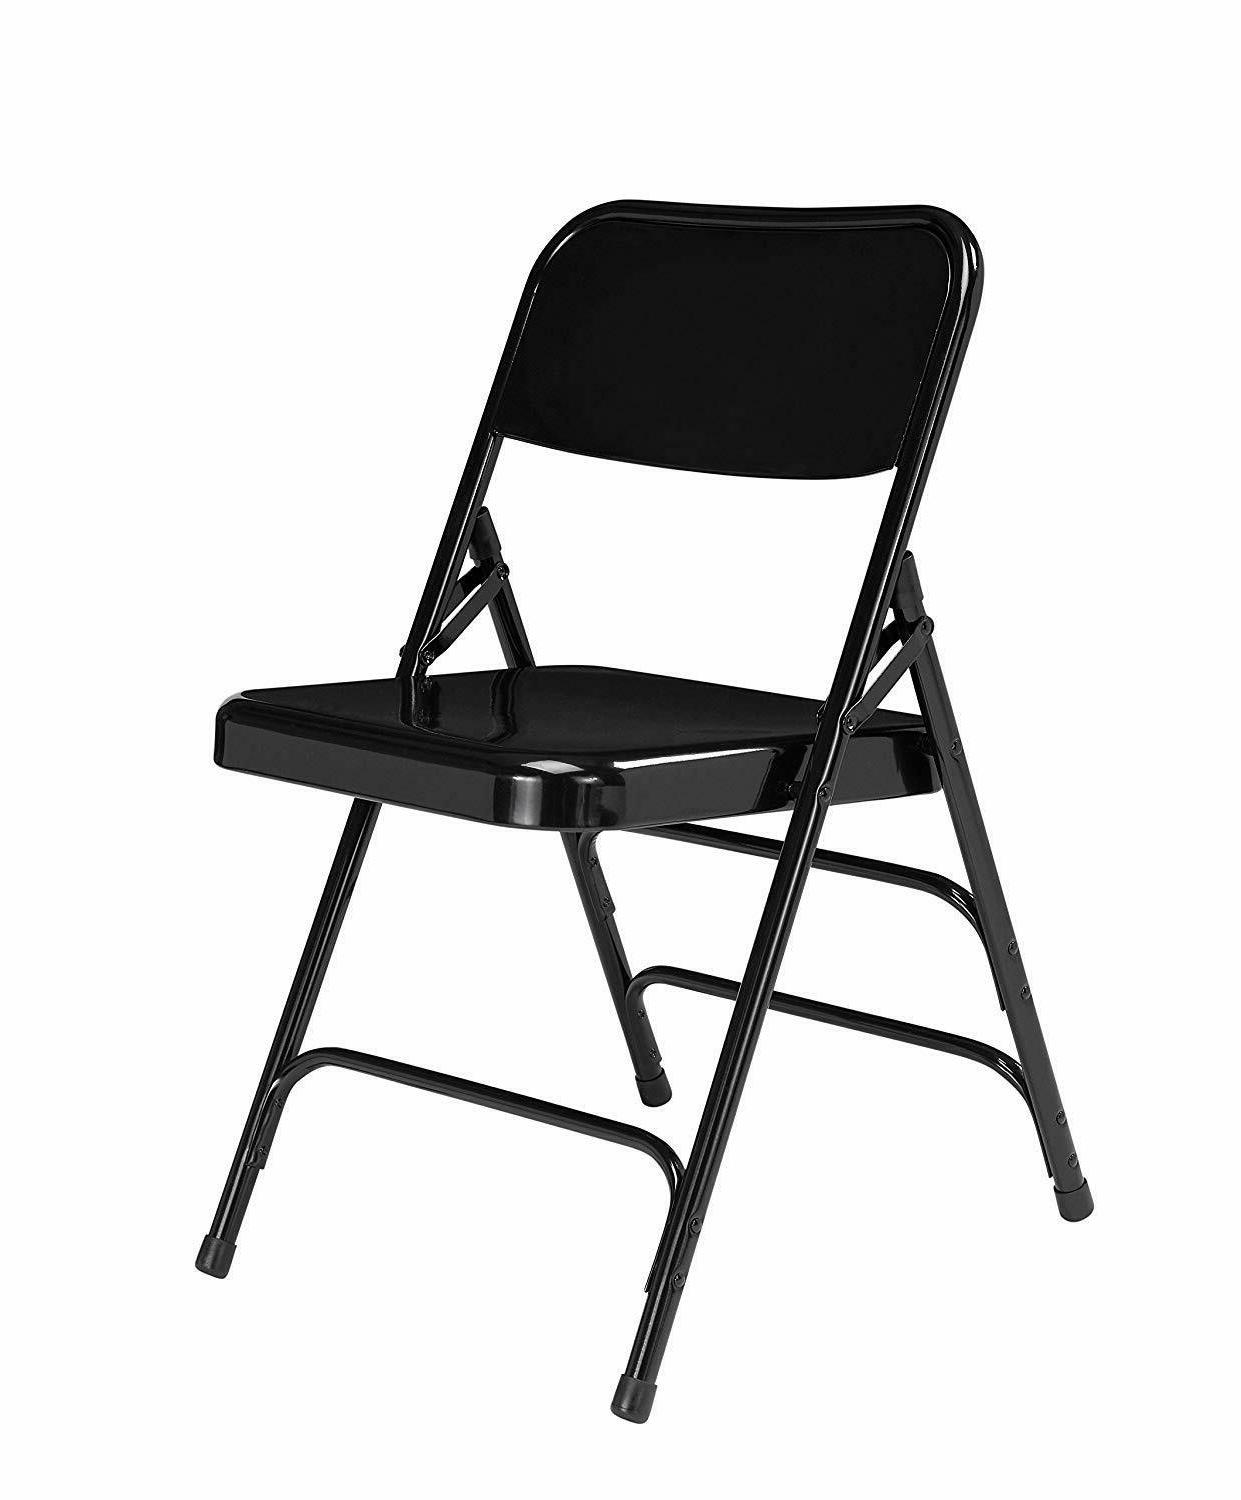 4 pack deluxe all steel folding chair